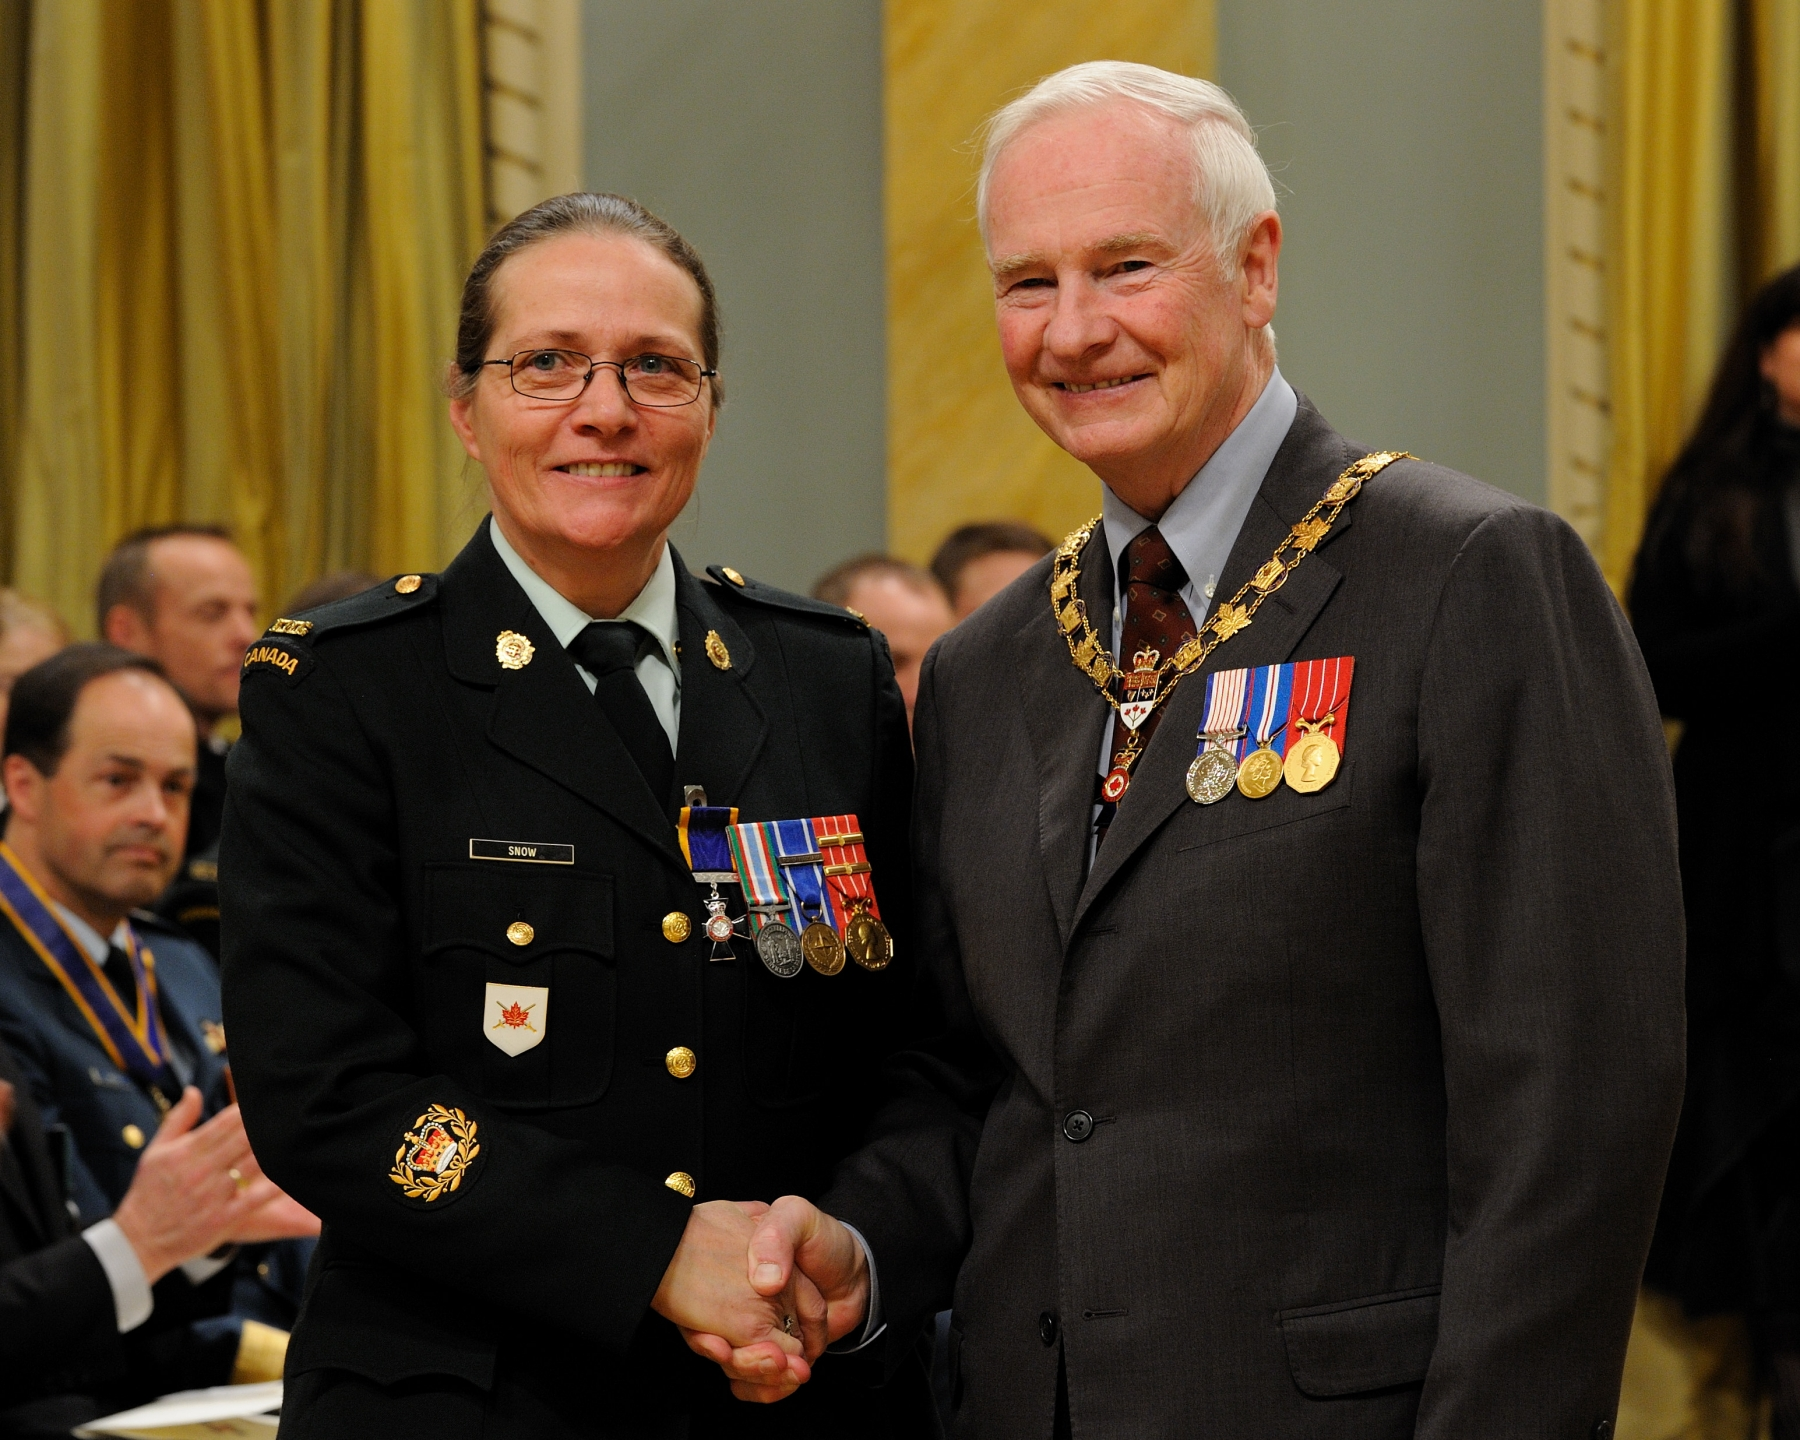 His Excellency presented the Order of Military Merit at the Member level (M.M.M.) to Master Warrant Officer Carol Snow, M.M.M., C.D., Land Staff Headquarters, Ottawa, Ontario.